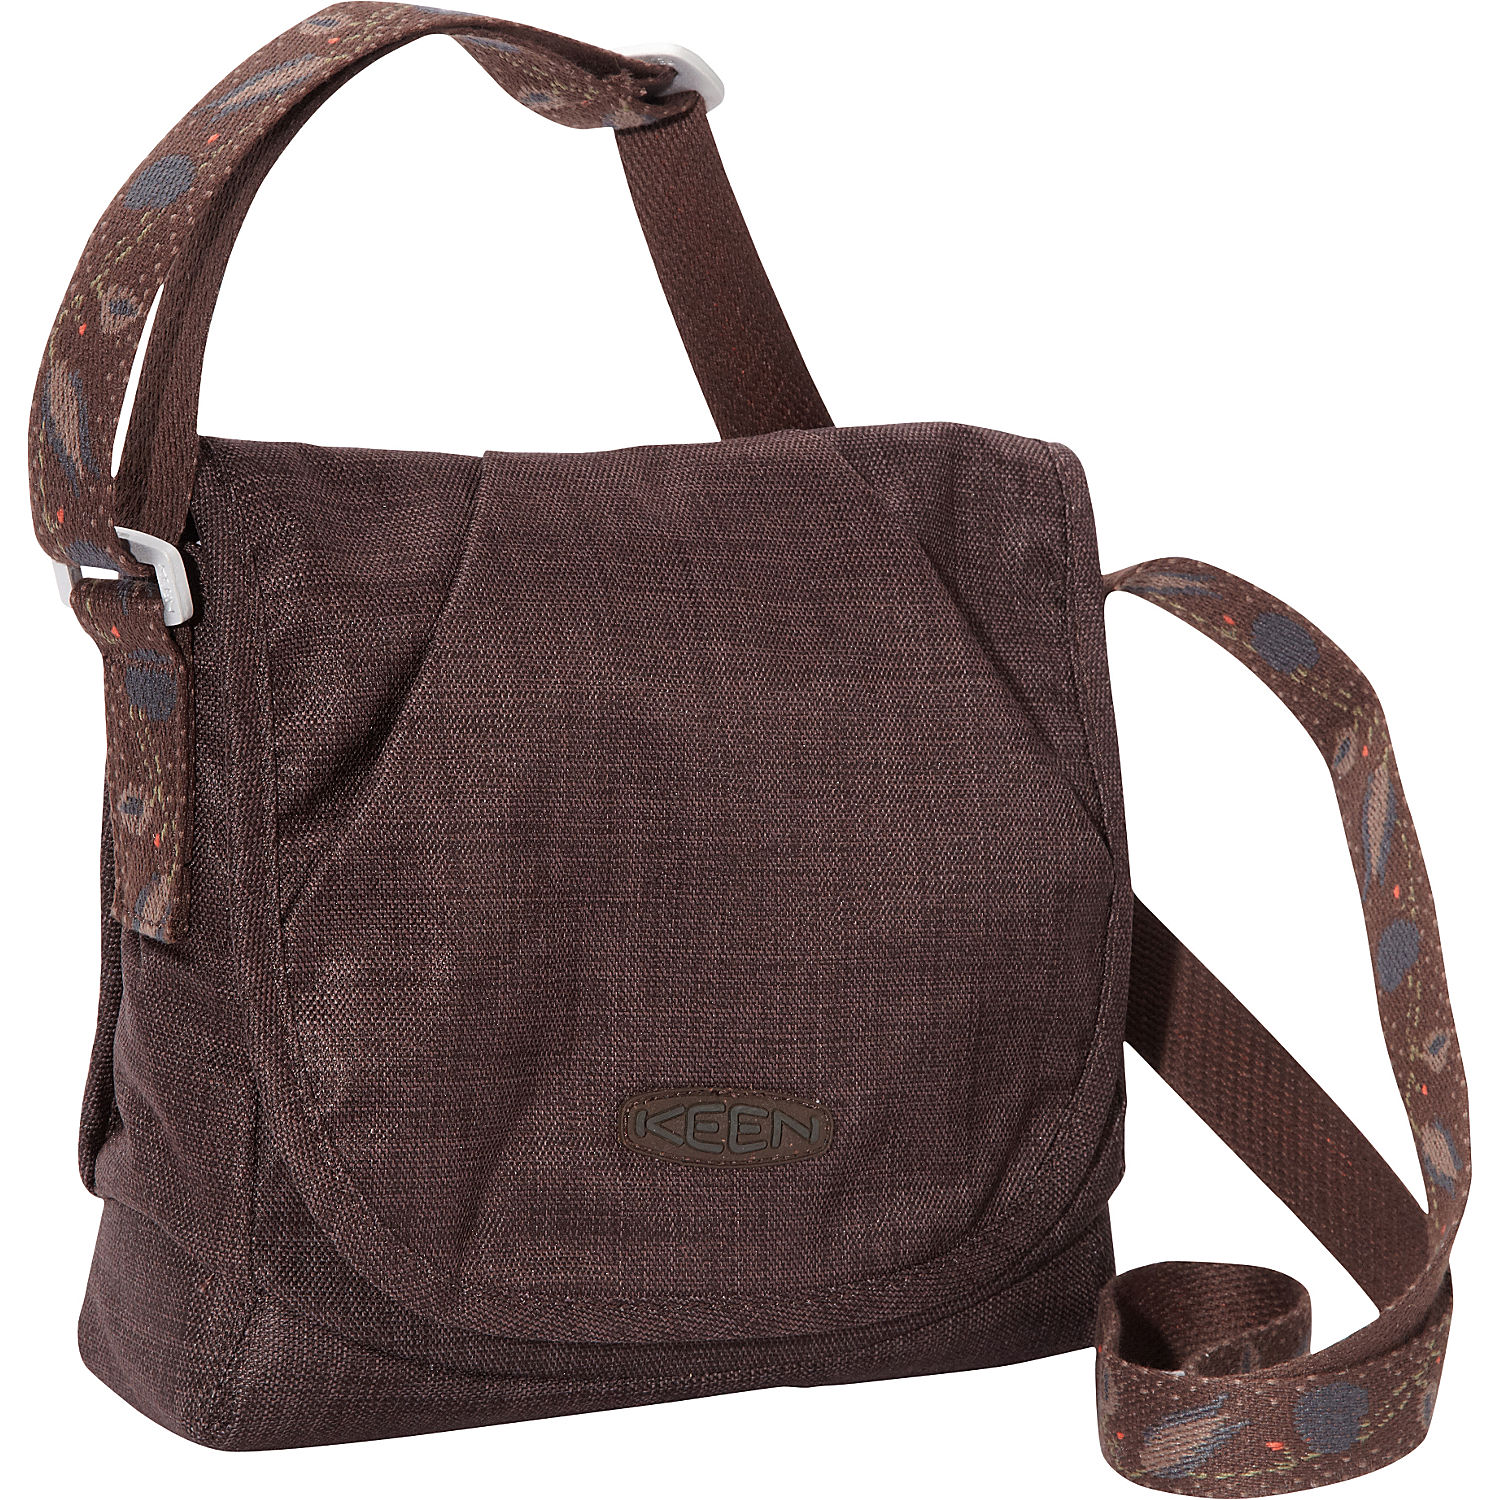 Keen Emerson Bag Cross Hatch Ebags